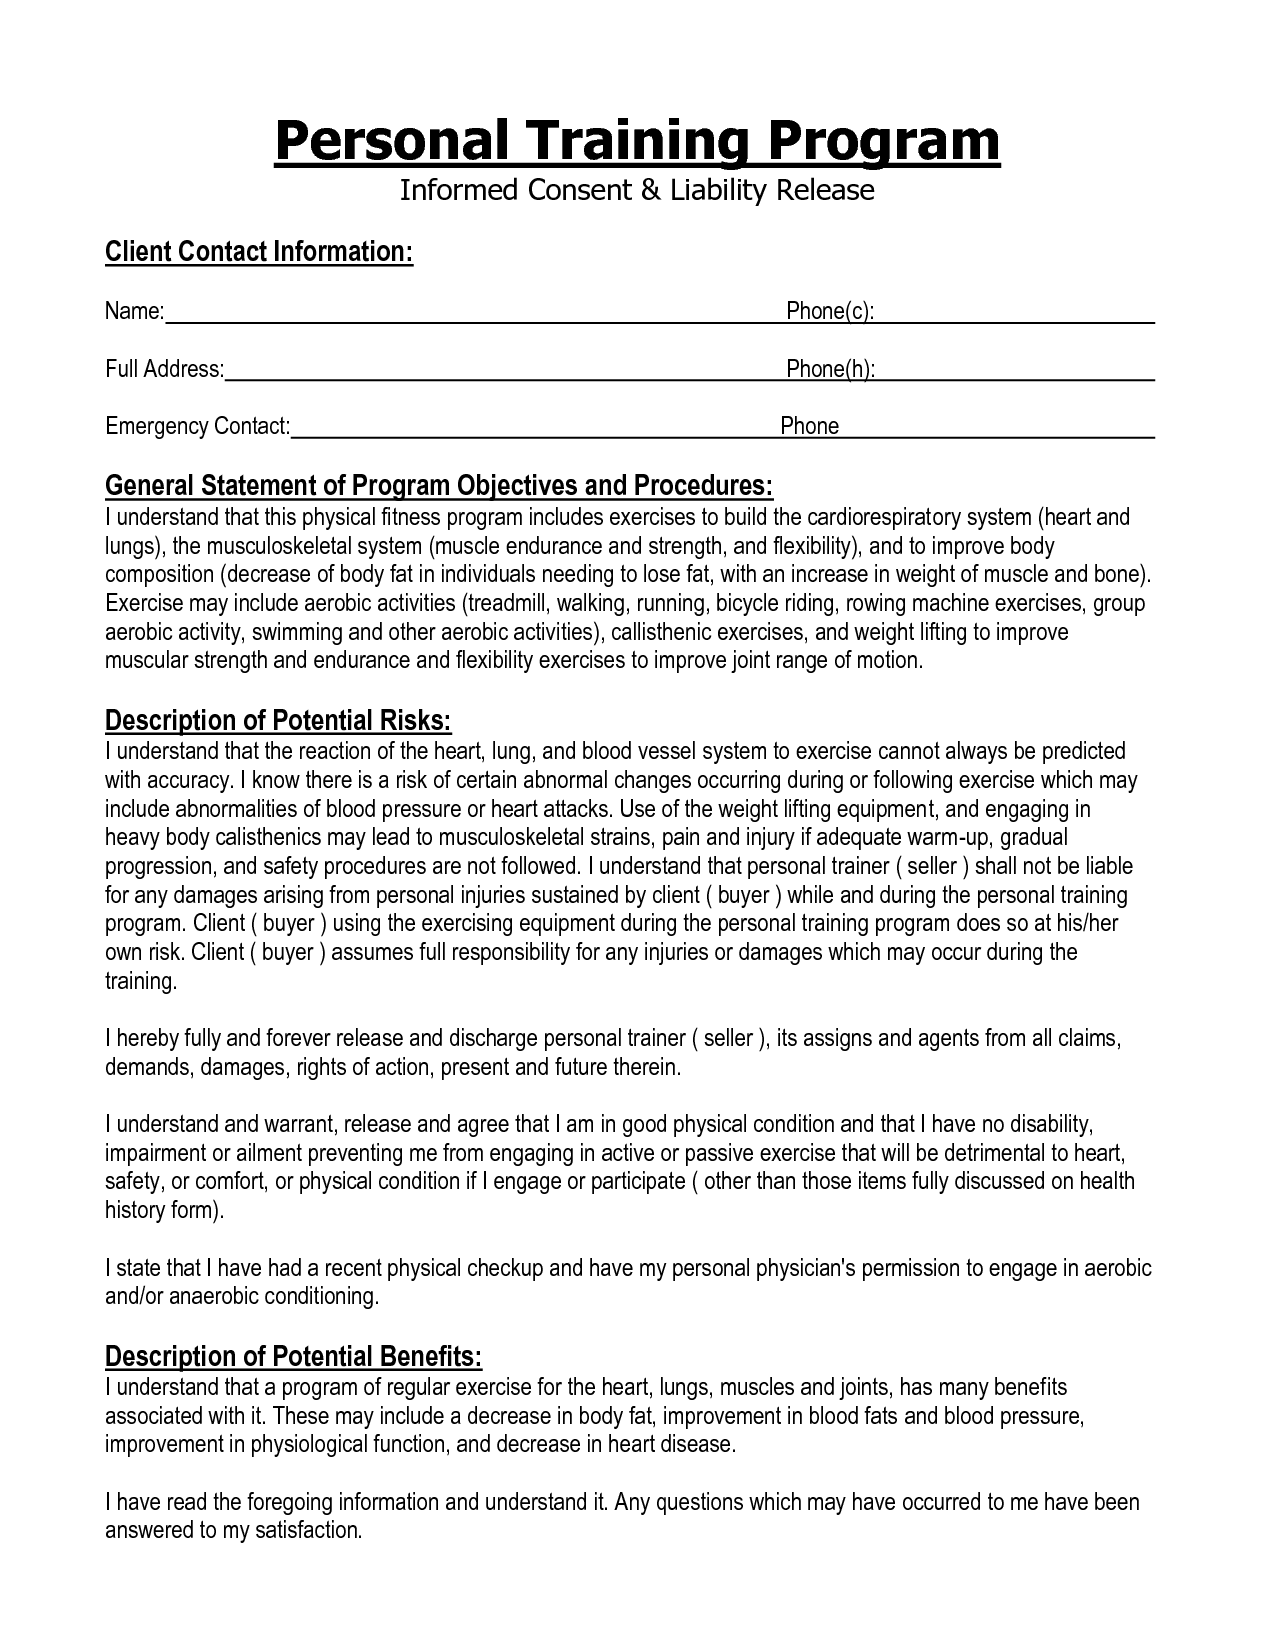 fitness waiver and release form template - informed consent form personal training google search